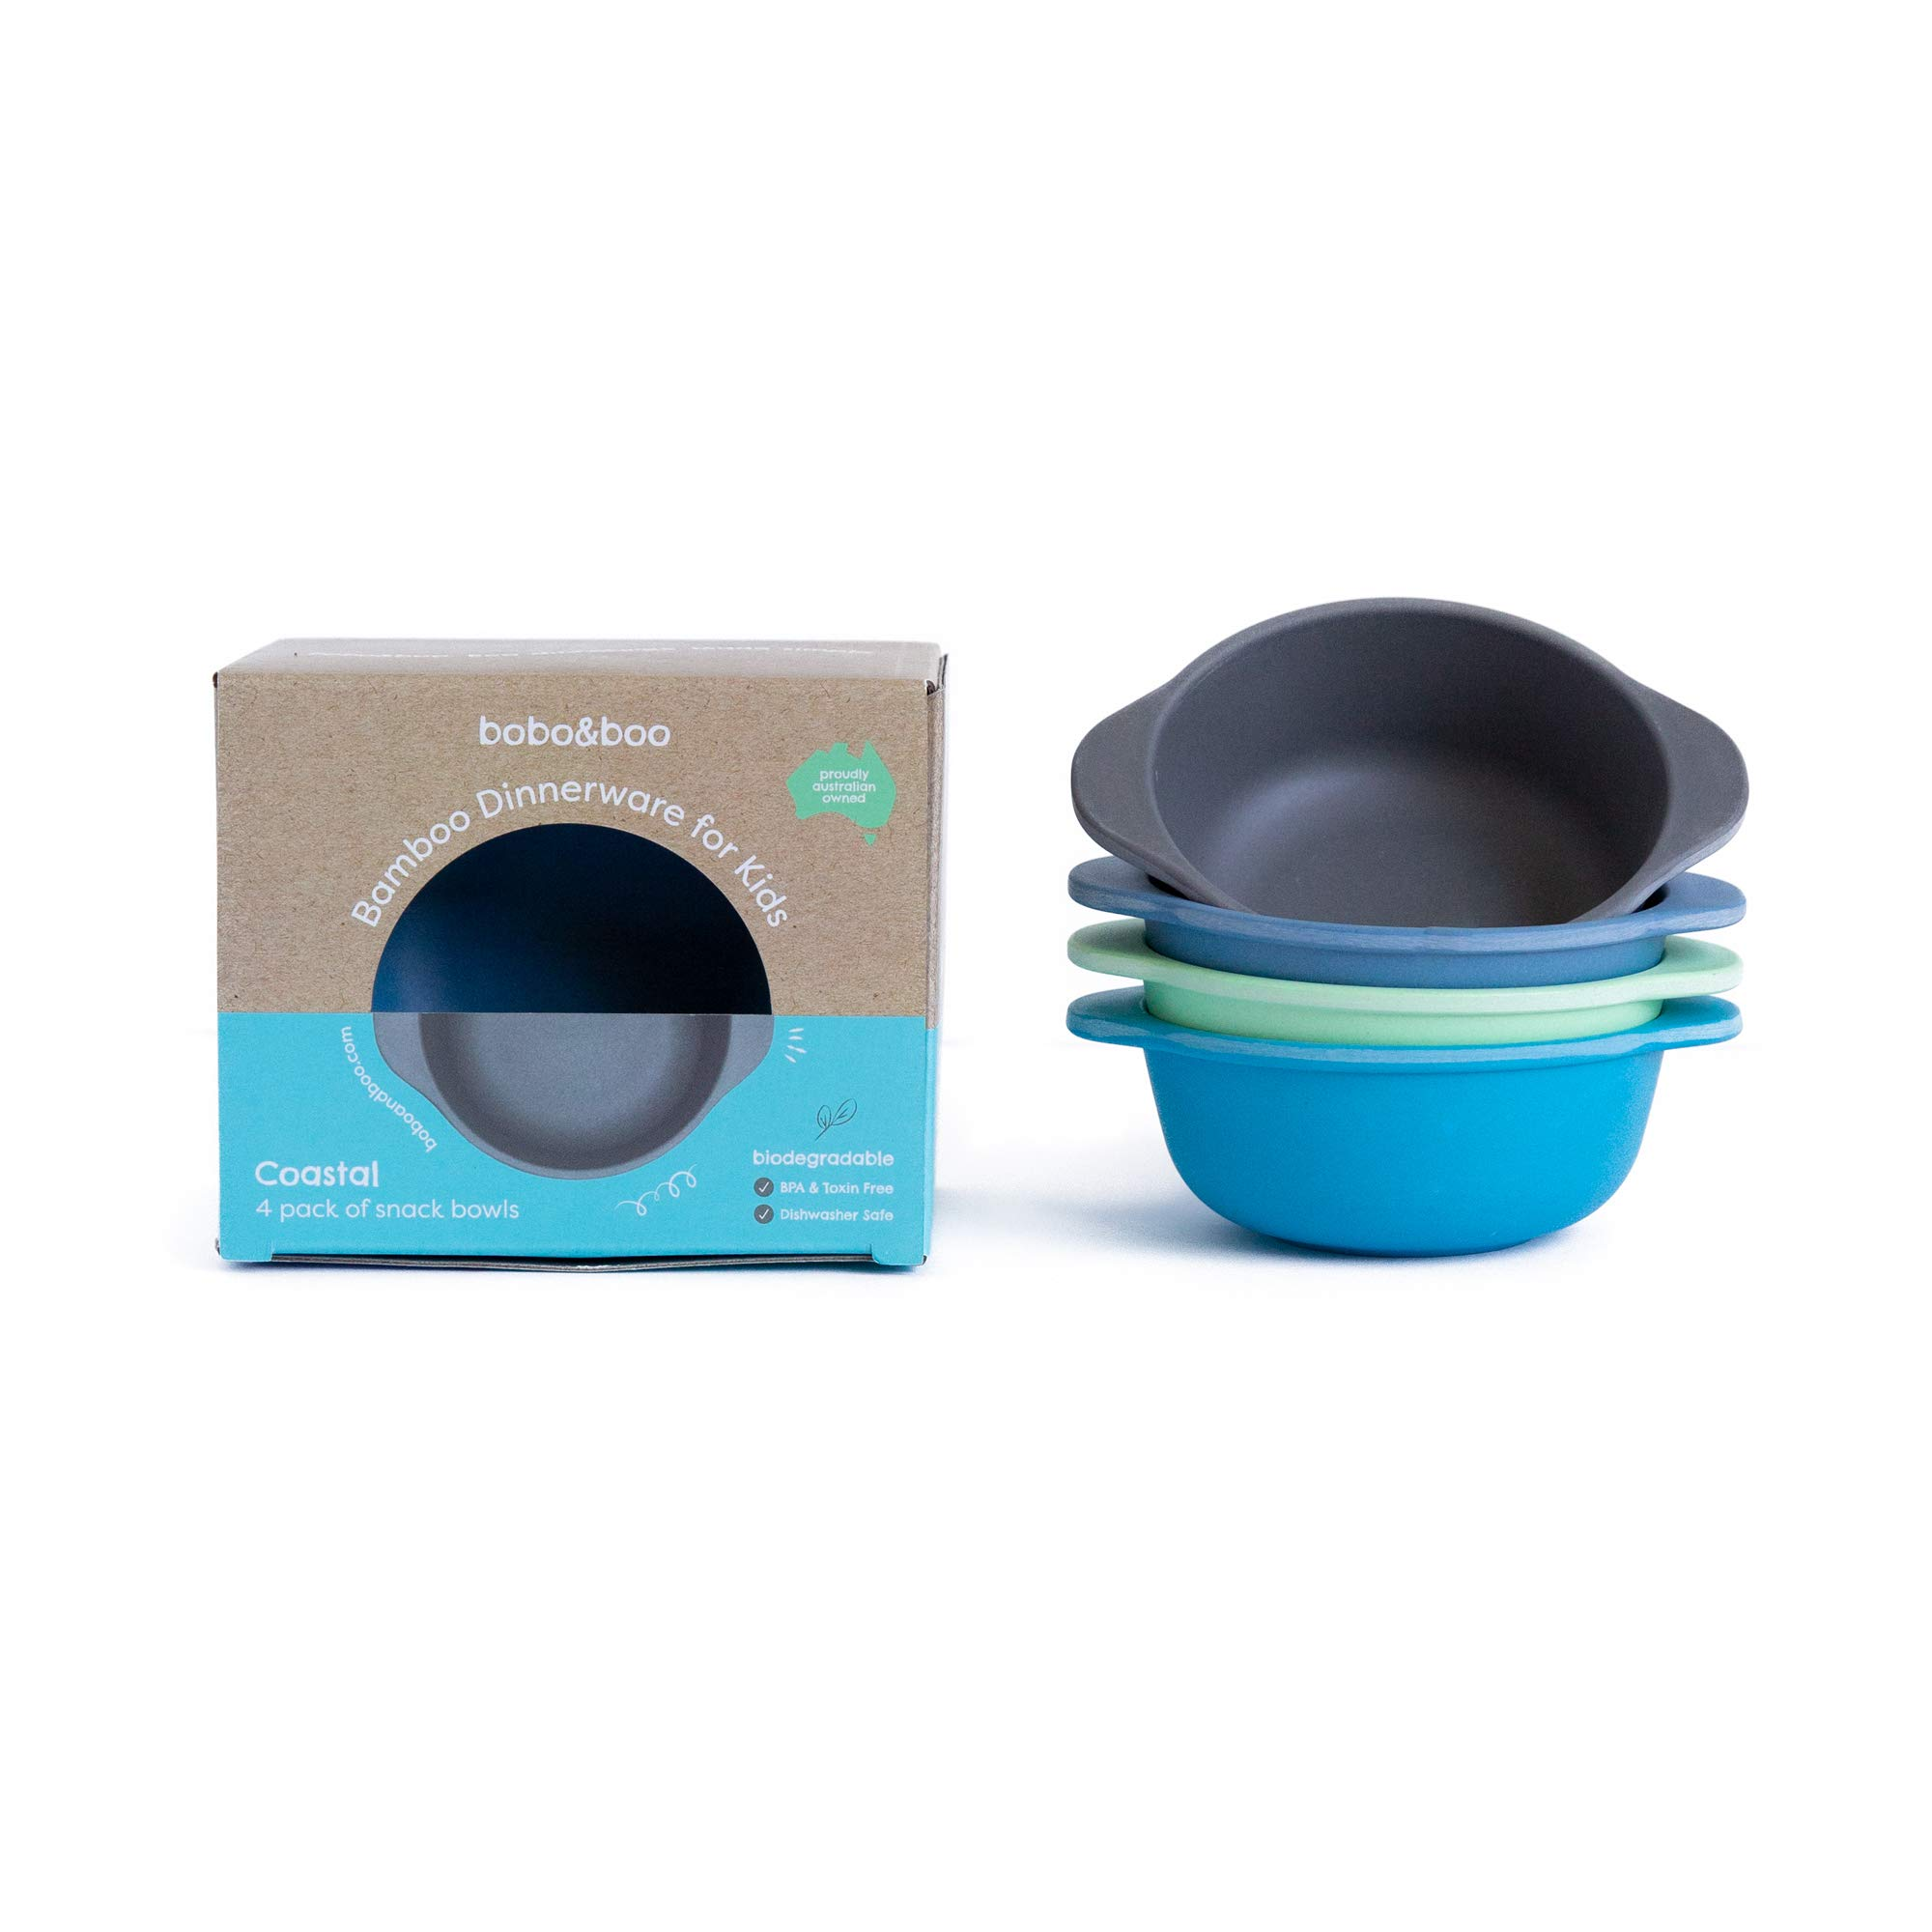 Bobo&Boo Bamboo Kids Snack Bowls, Set of 4 Bamboo Dishes, Non Toxic, Eco Friendly & Stackable Kids Snack Containers, Great Gift for Baby Showers, Birthdays & Preschool Graduations,Coastal by Bobo&boo